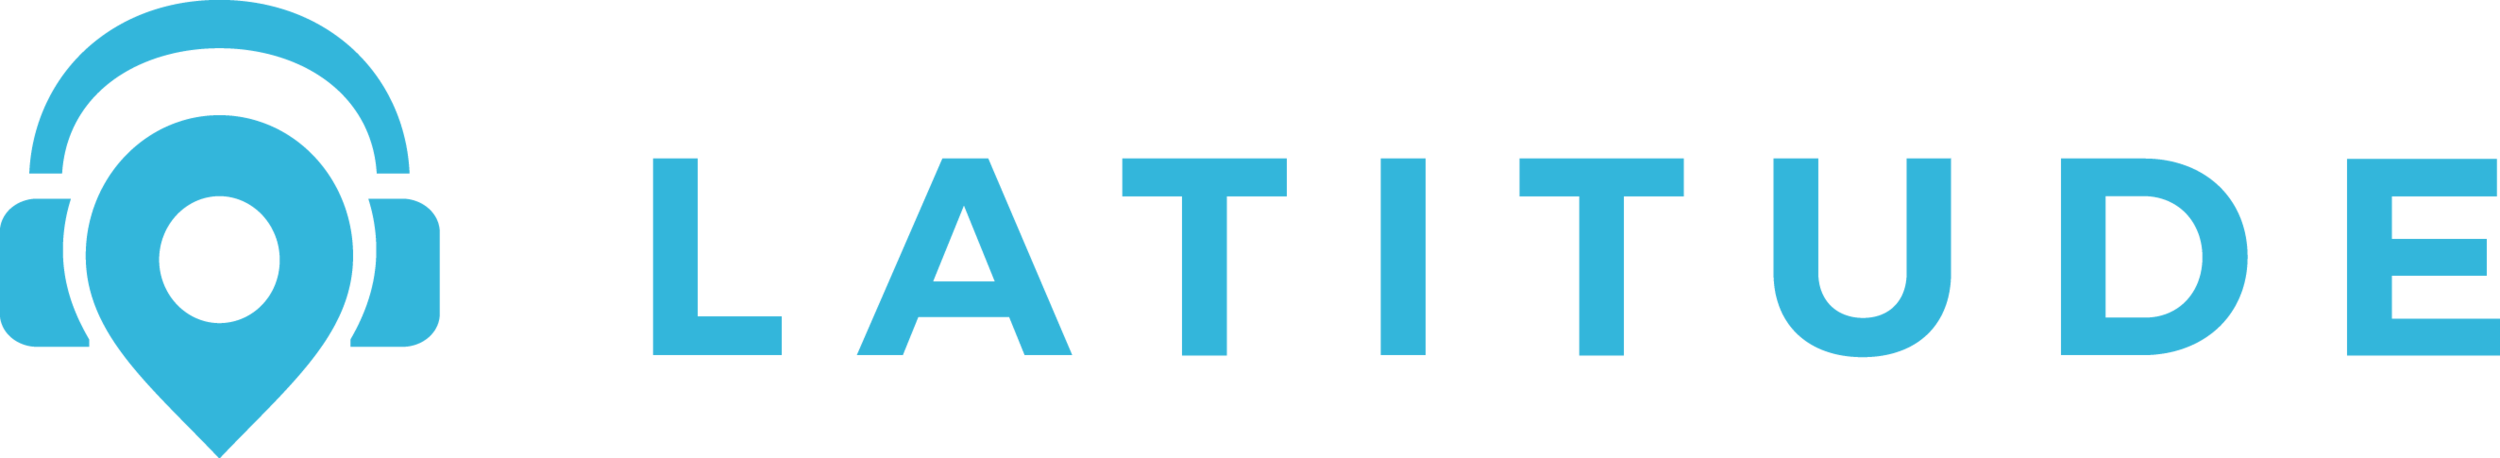 Whistic_logo.png